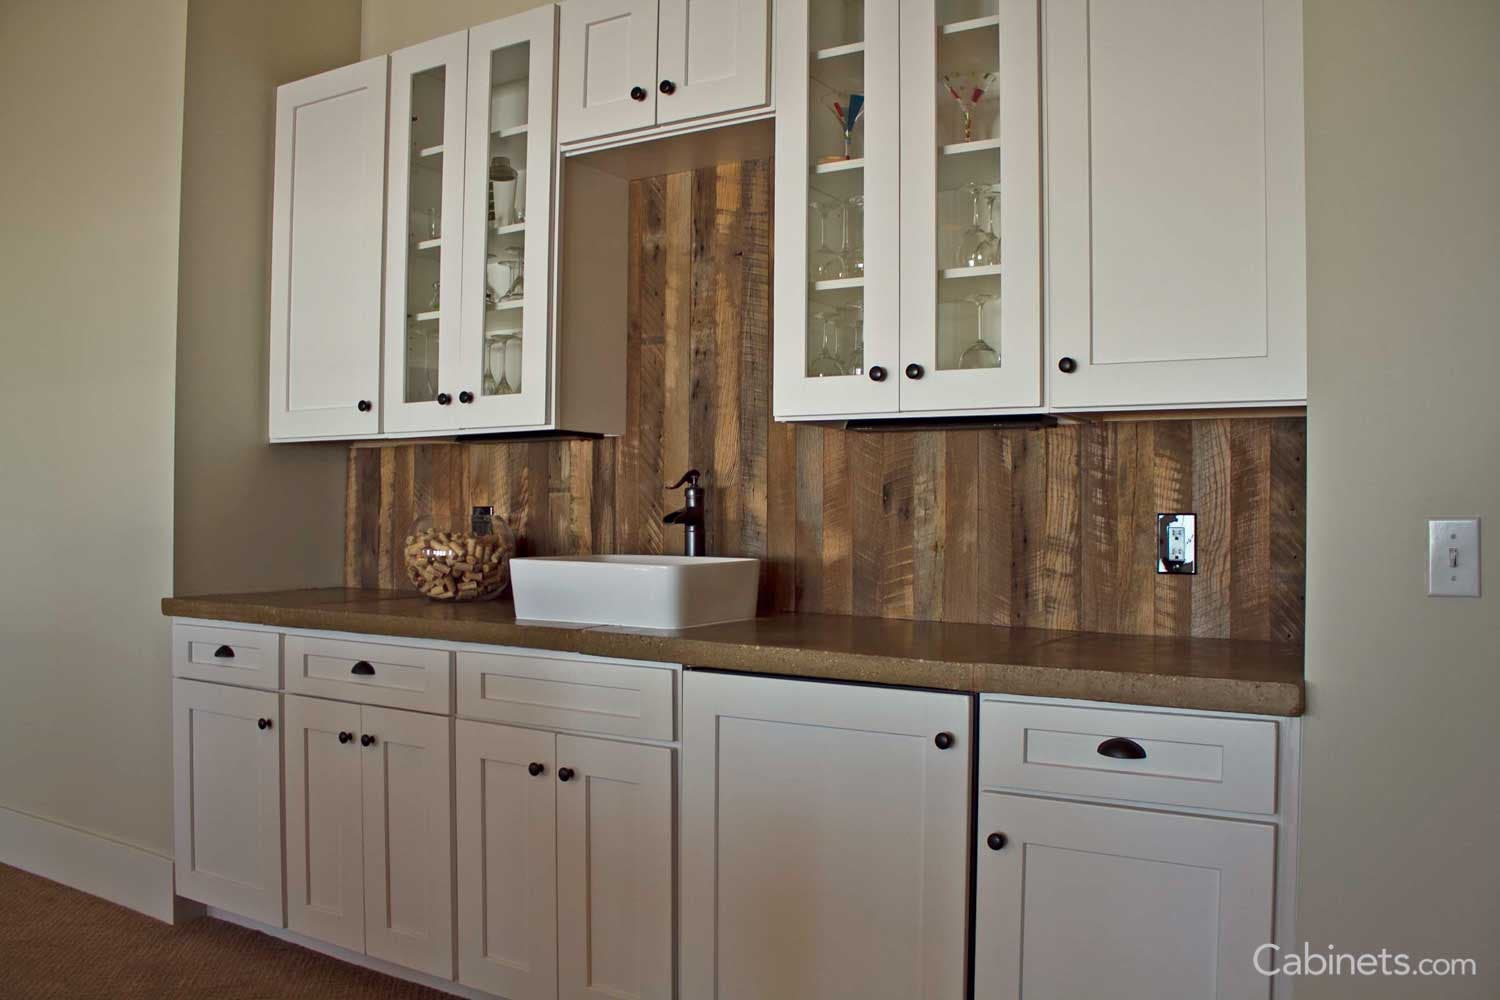 Selecting The Right Cabinet Hardware Cabinets Com